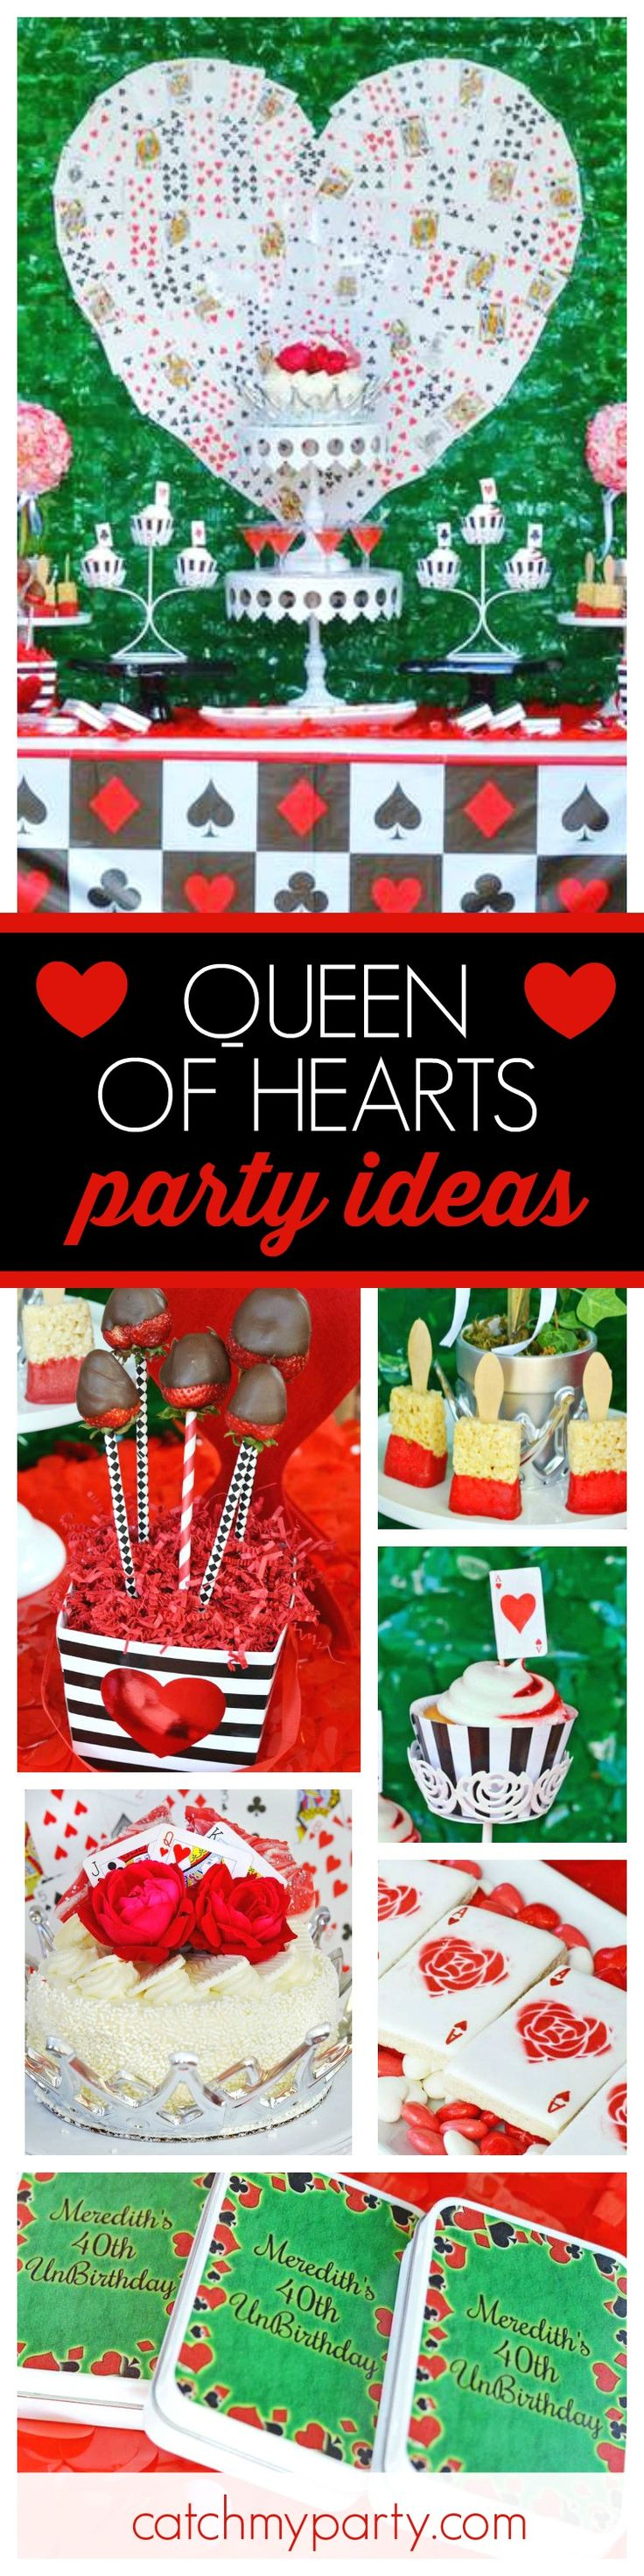 Take a look at this awesome Alice in Wonderland inspired Queen of Hearts Valentine's party. The dessert table is fantastic!! See more party ideas and share yours at CatchMyParty.com